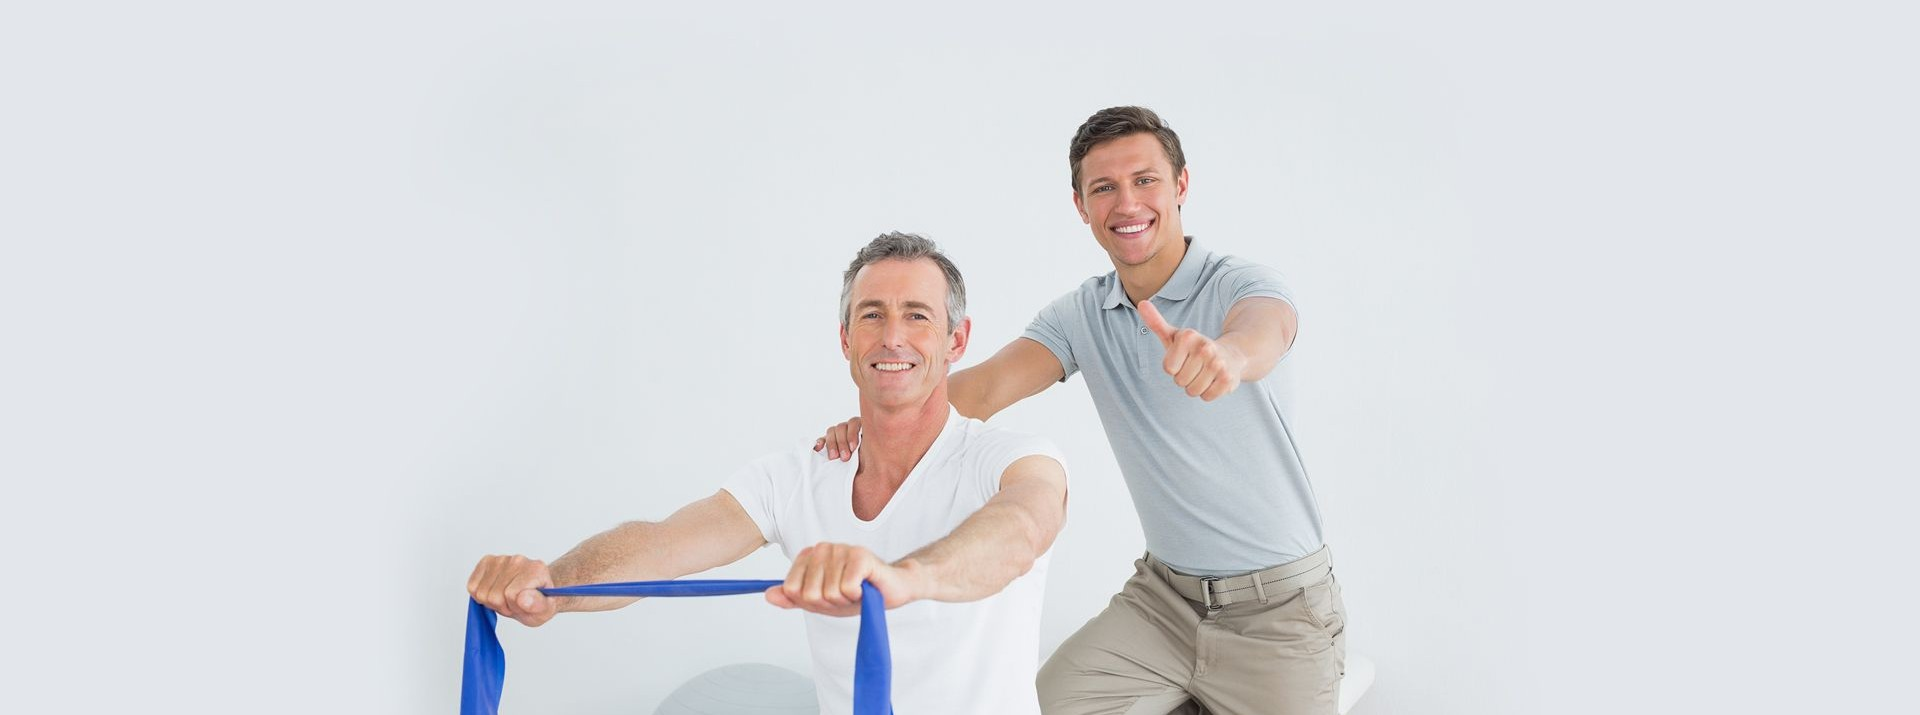 Medstar Rehabilitation - Physiotherapy